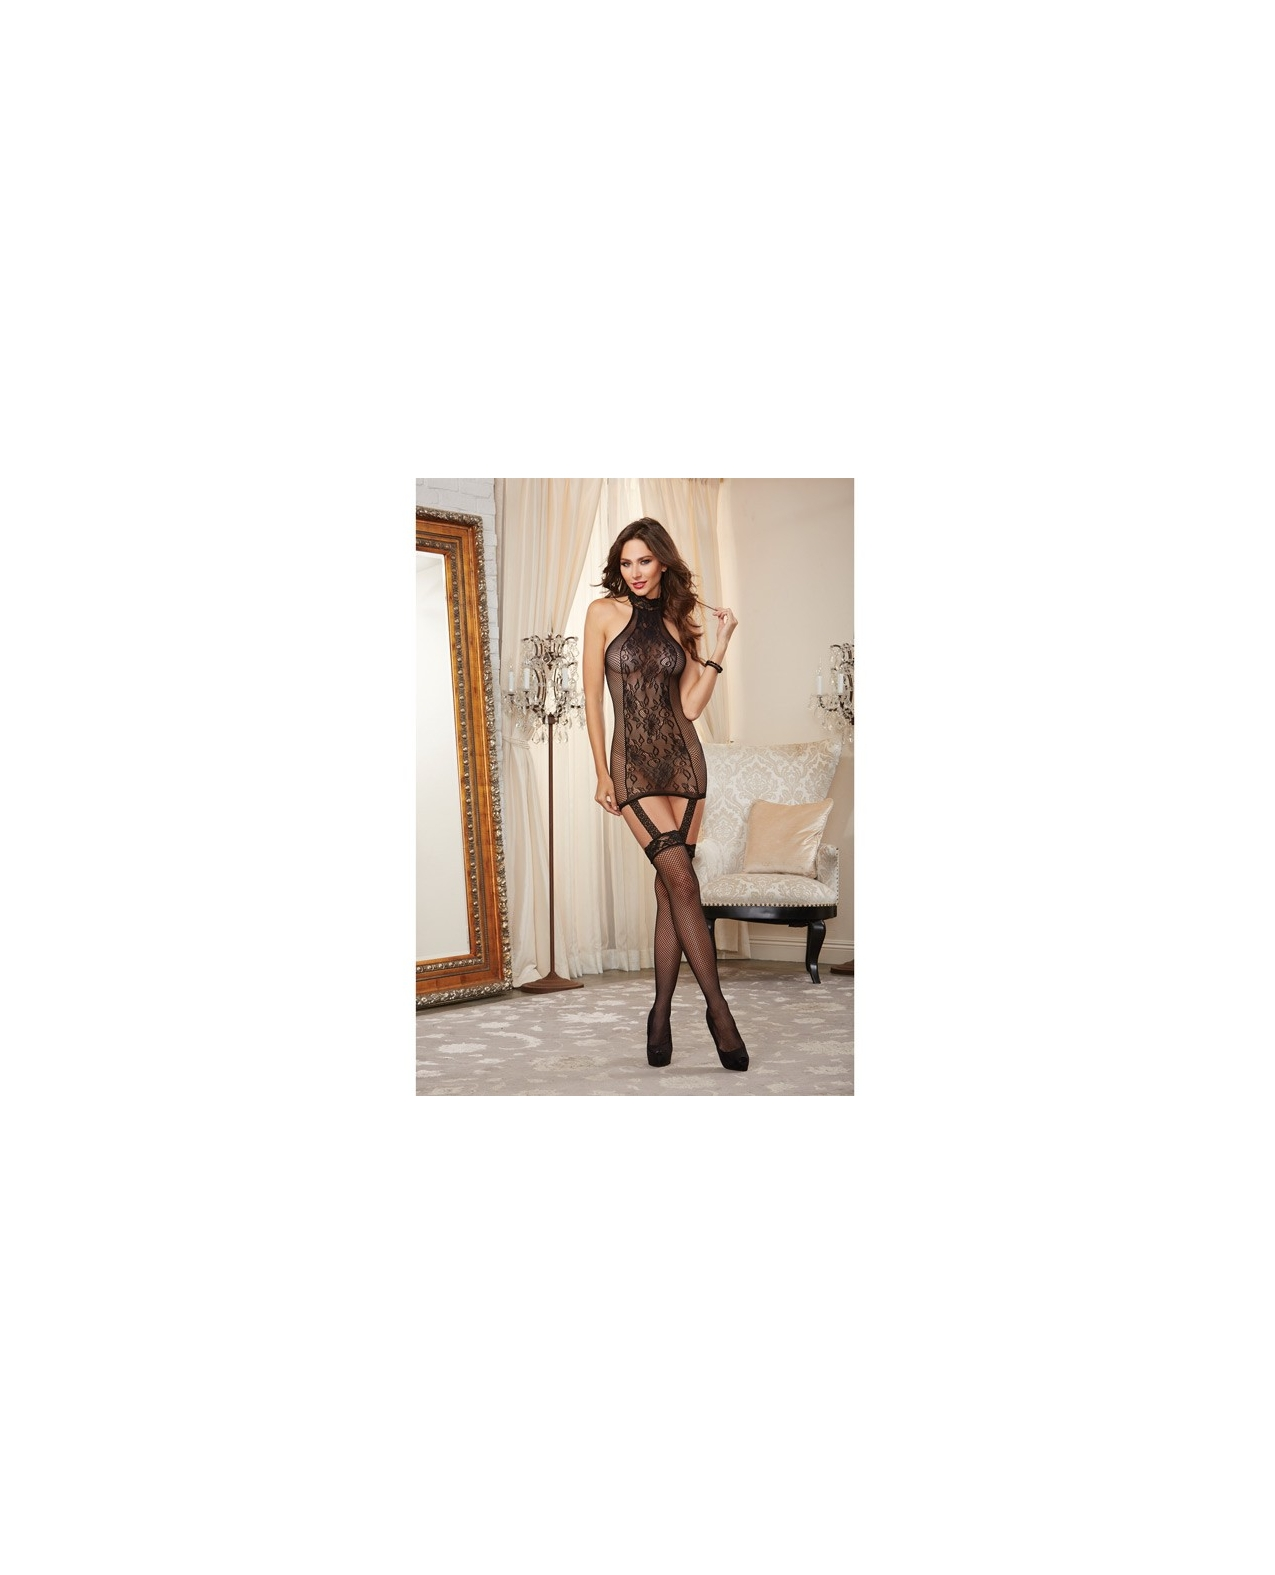 Lace Garter Dress w/Fishnet Sides & Attached Thigh High Stockings Black O/S